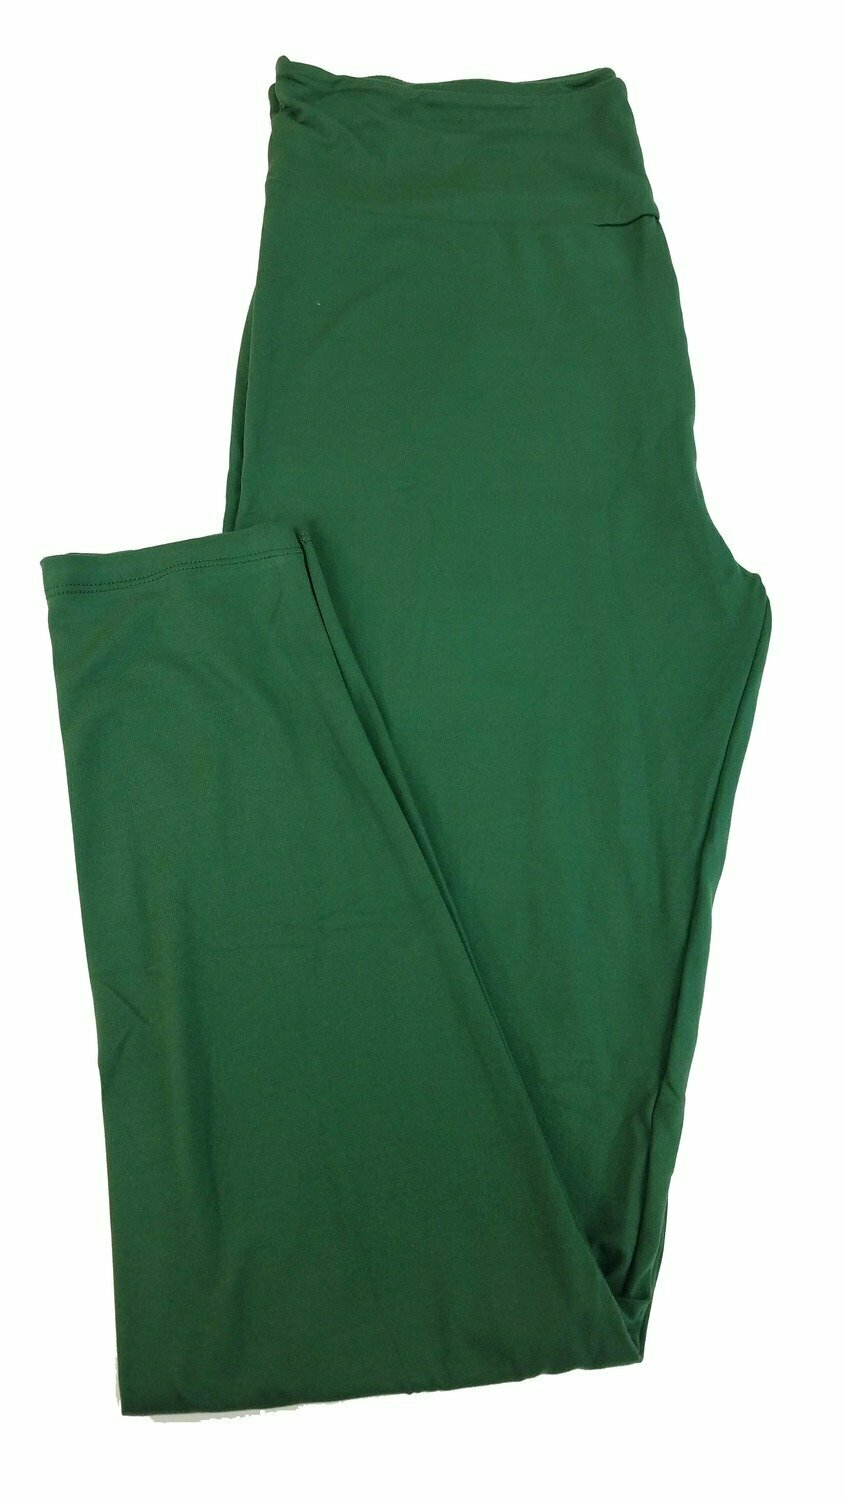 Tall Curvy 2 (TC2) Solids Hunter Green LuLaRoe Leggings